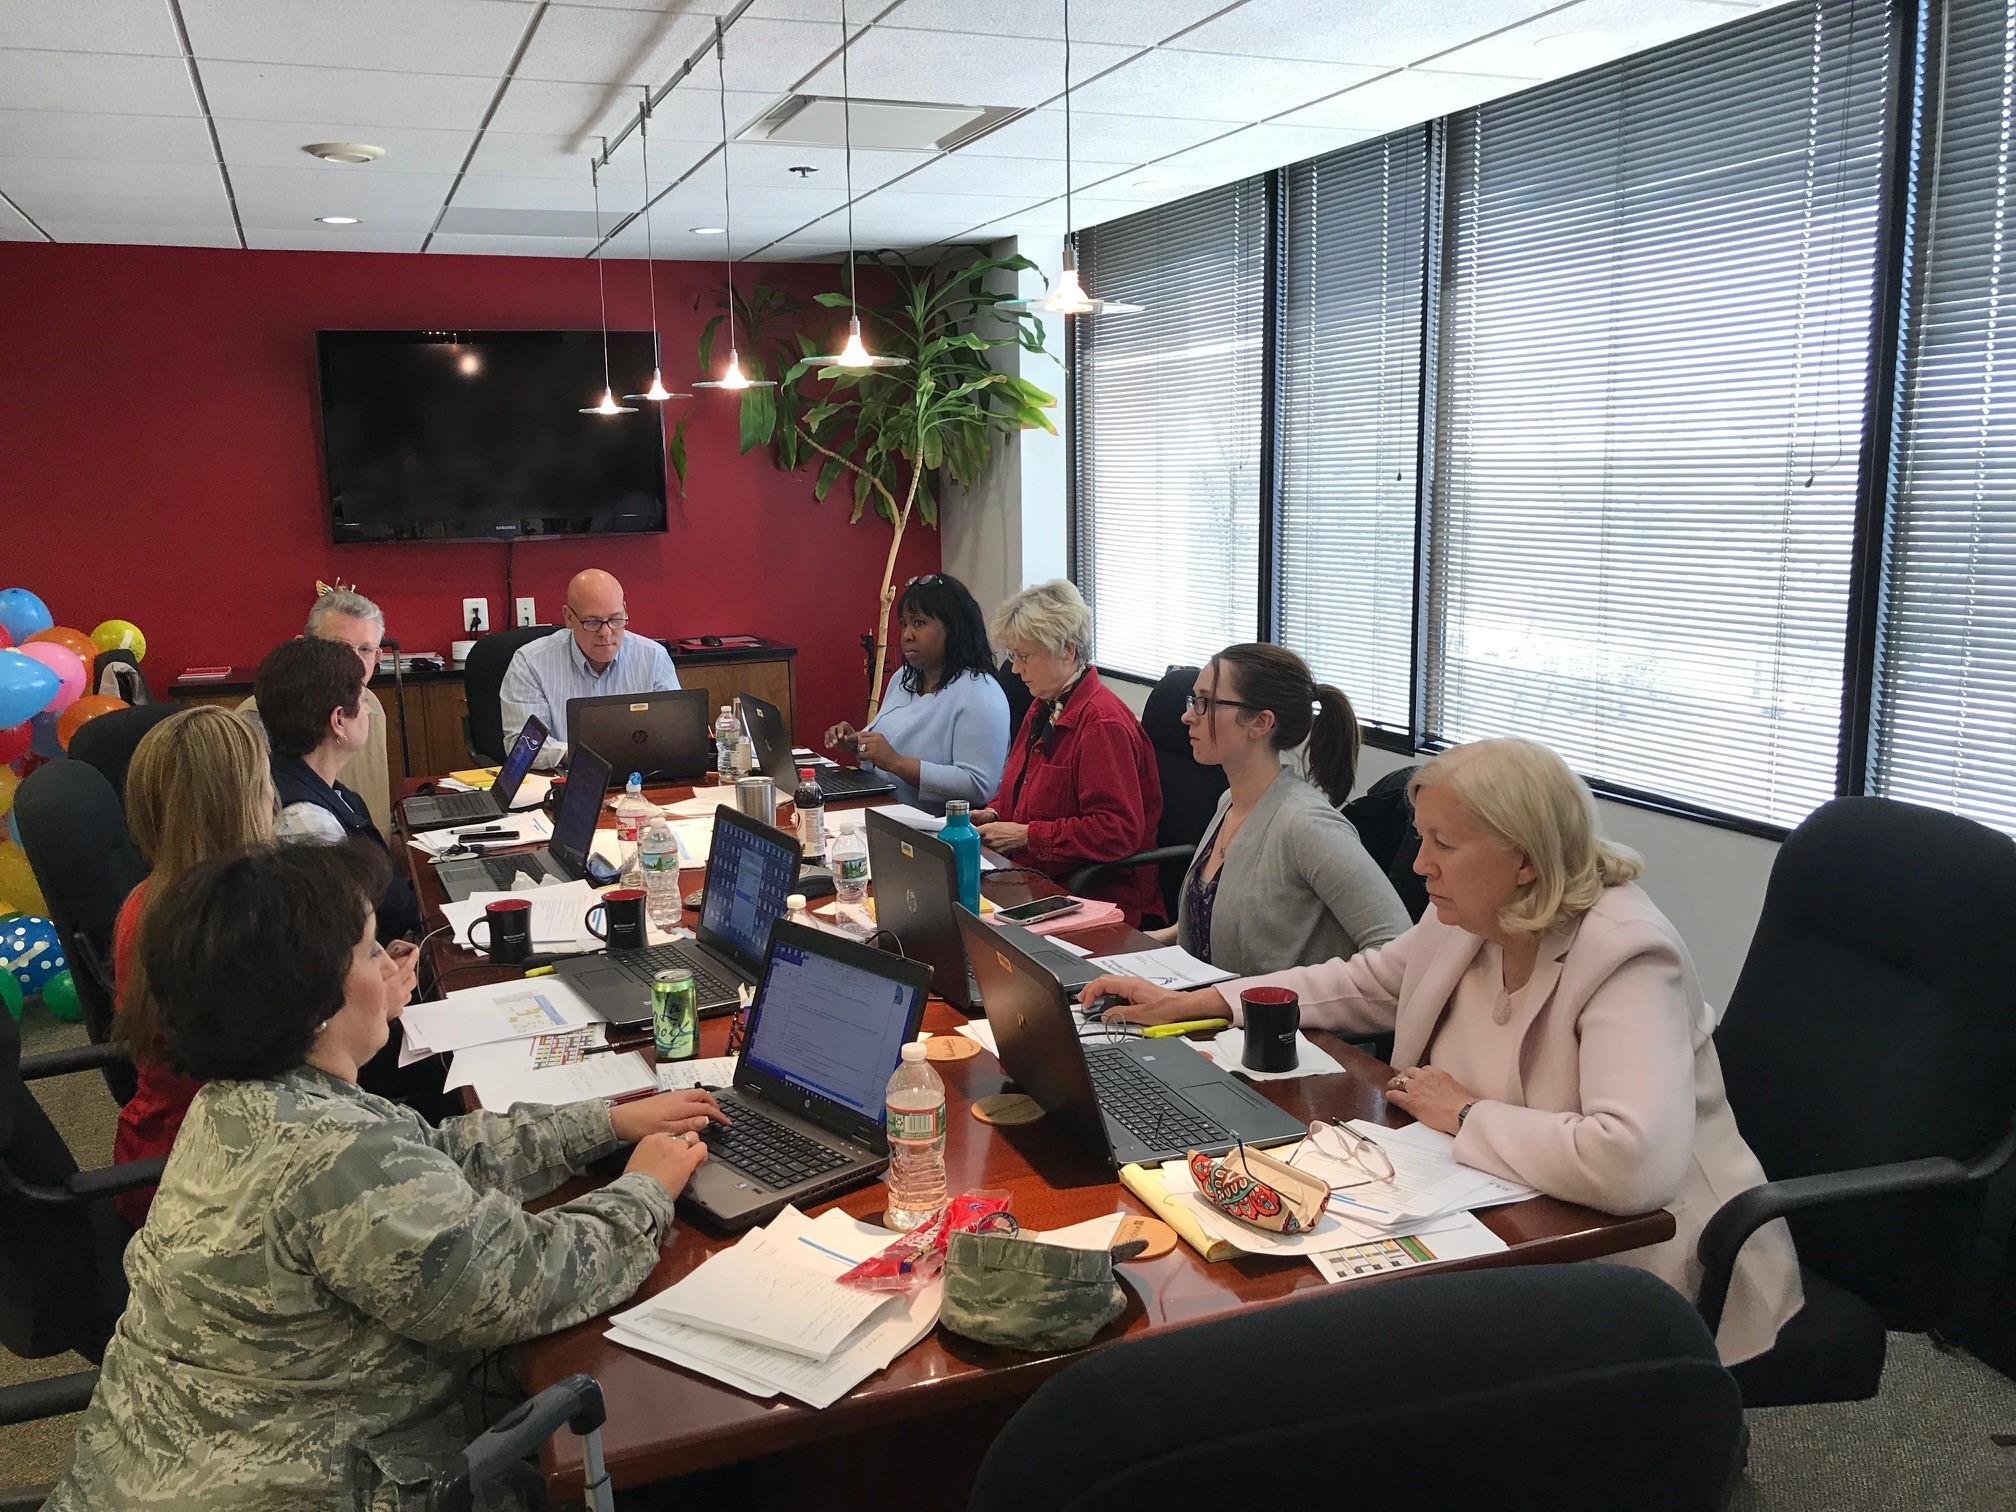 Windwalker Group in Tysons Corner, VA was thrilled to host our clients, US Air Force Medical Service Agency (AFMSA) Access To Care (ATC) Program for their Offsite Meetings this week (April 5-6, 2018). It was the first time in a long while that the entire team was together from both NoVa and Texas!